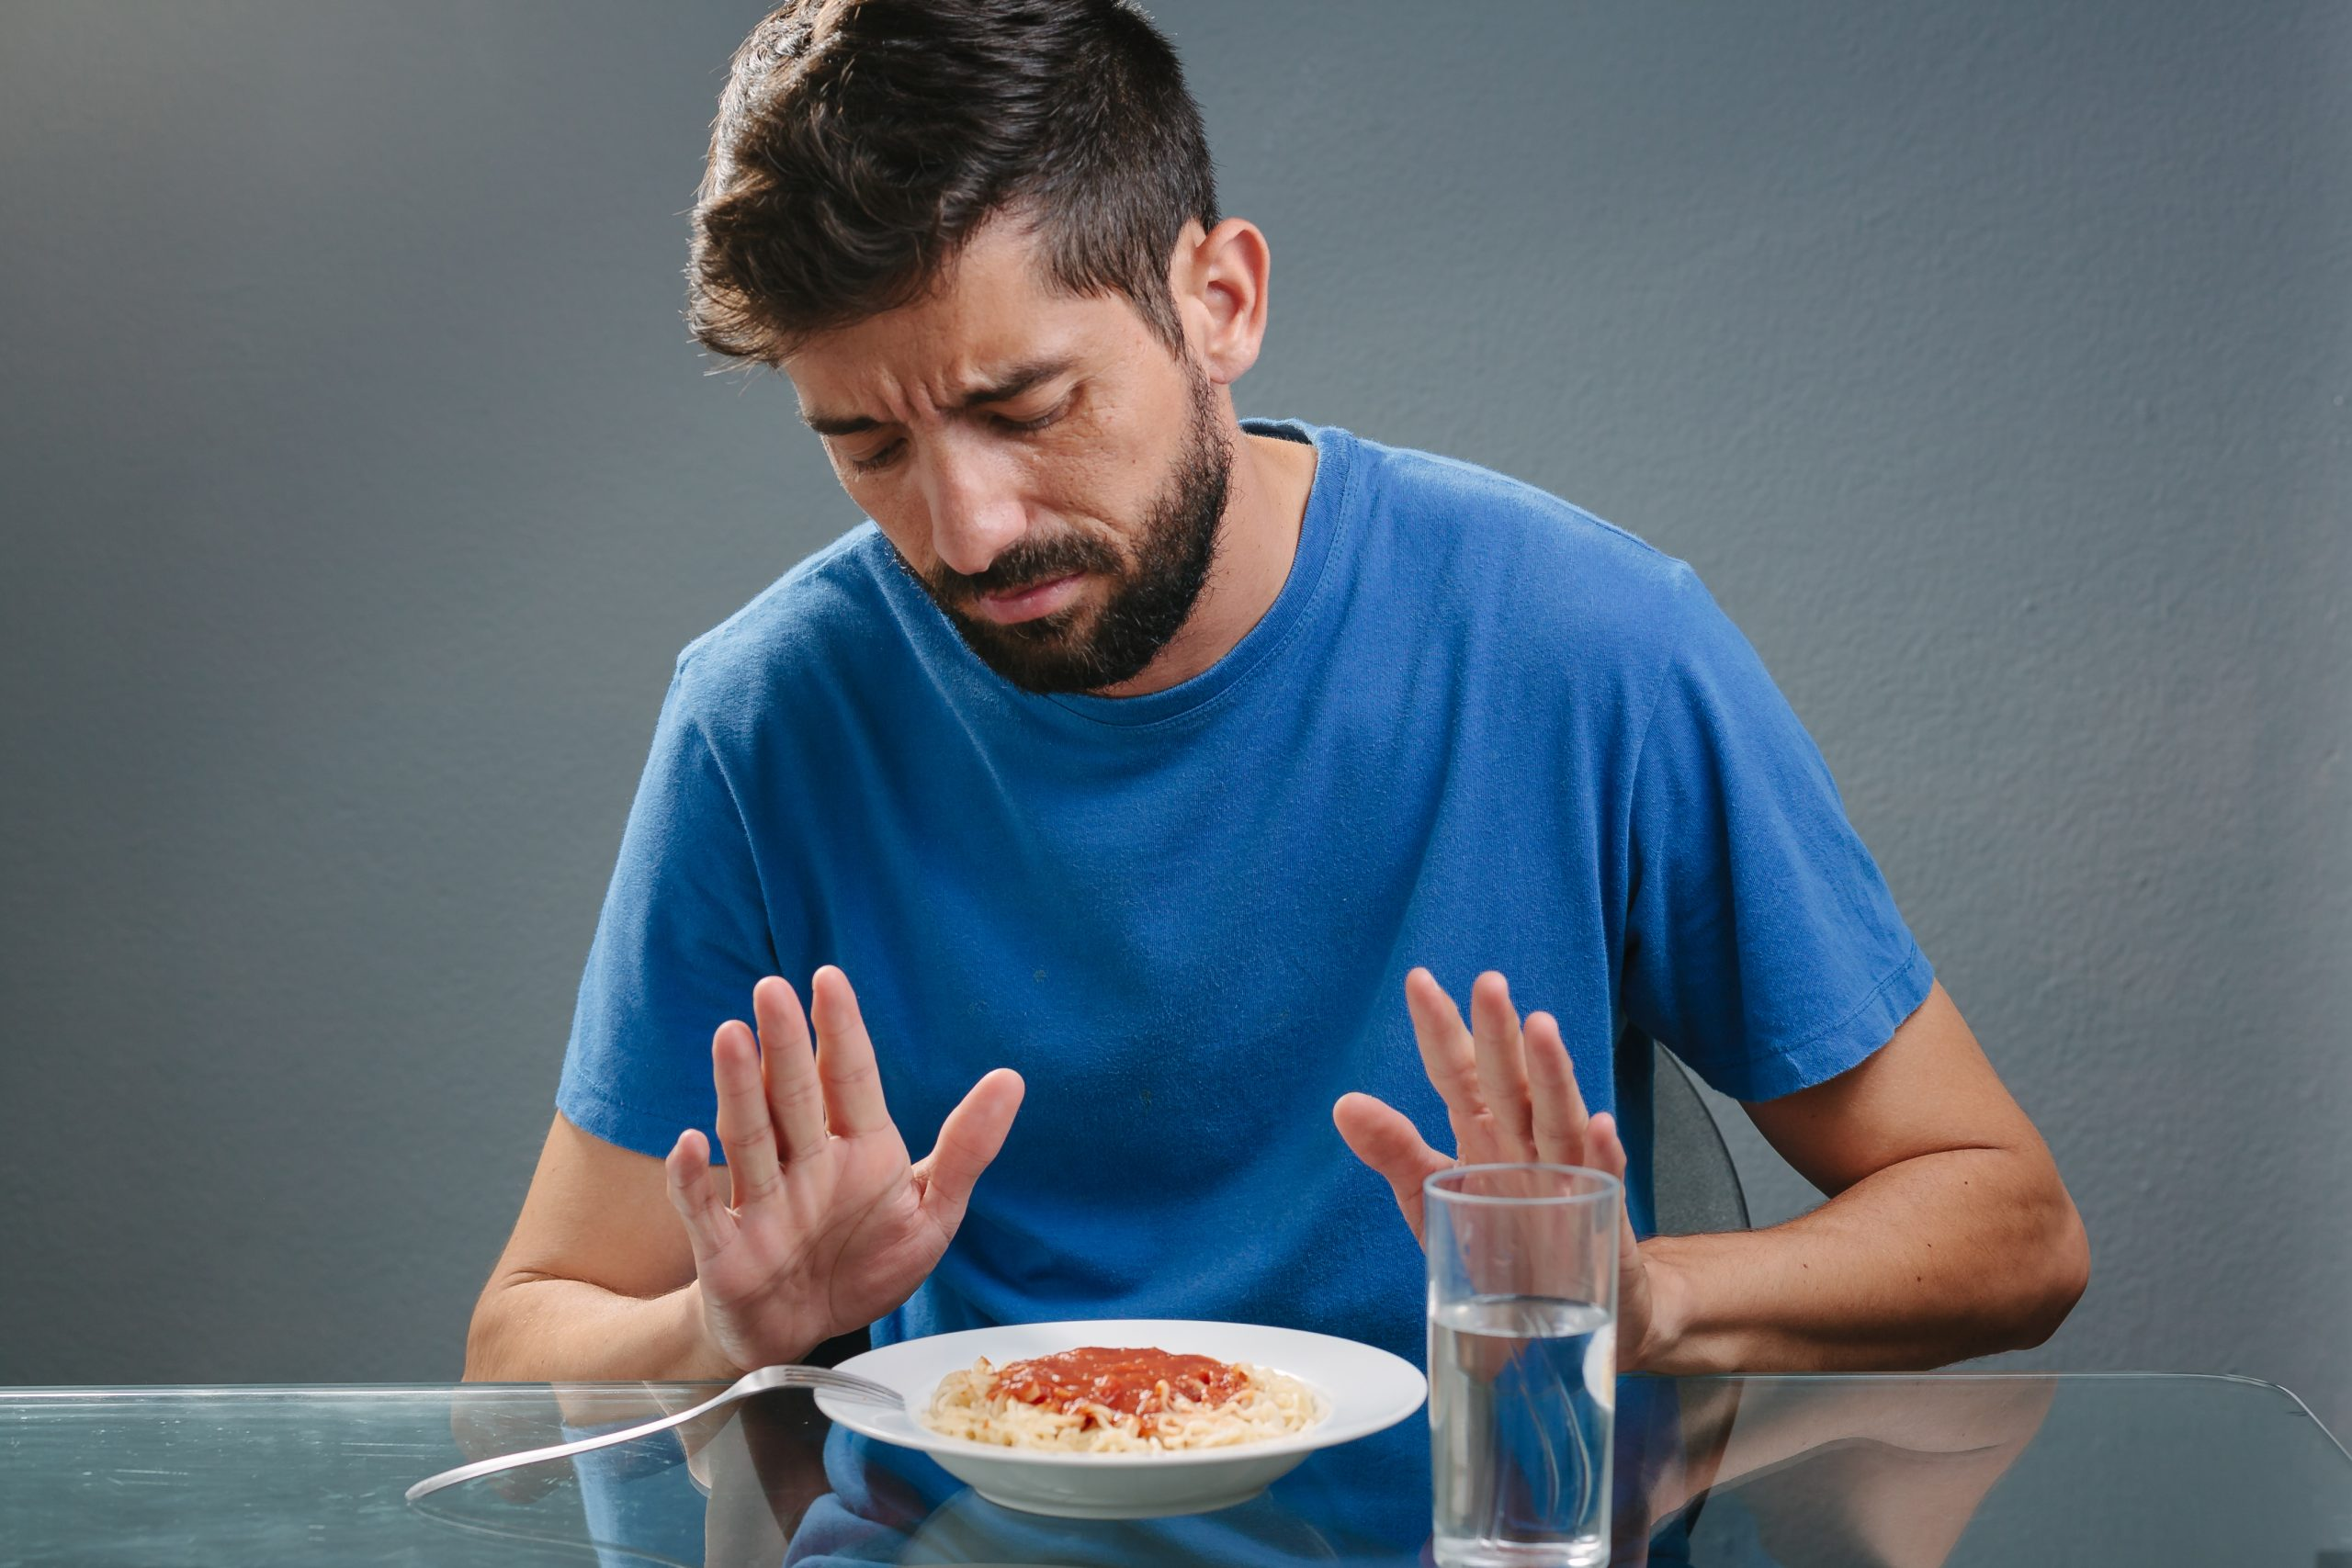 man wearing a blue shirt pushing away his plate of spaghetti, loss of appetite, eating disorder, intermittent fasting